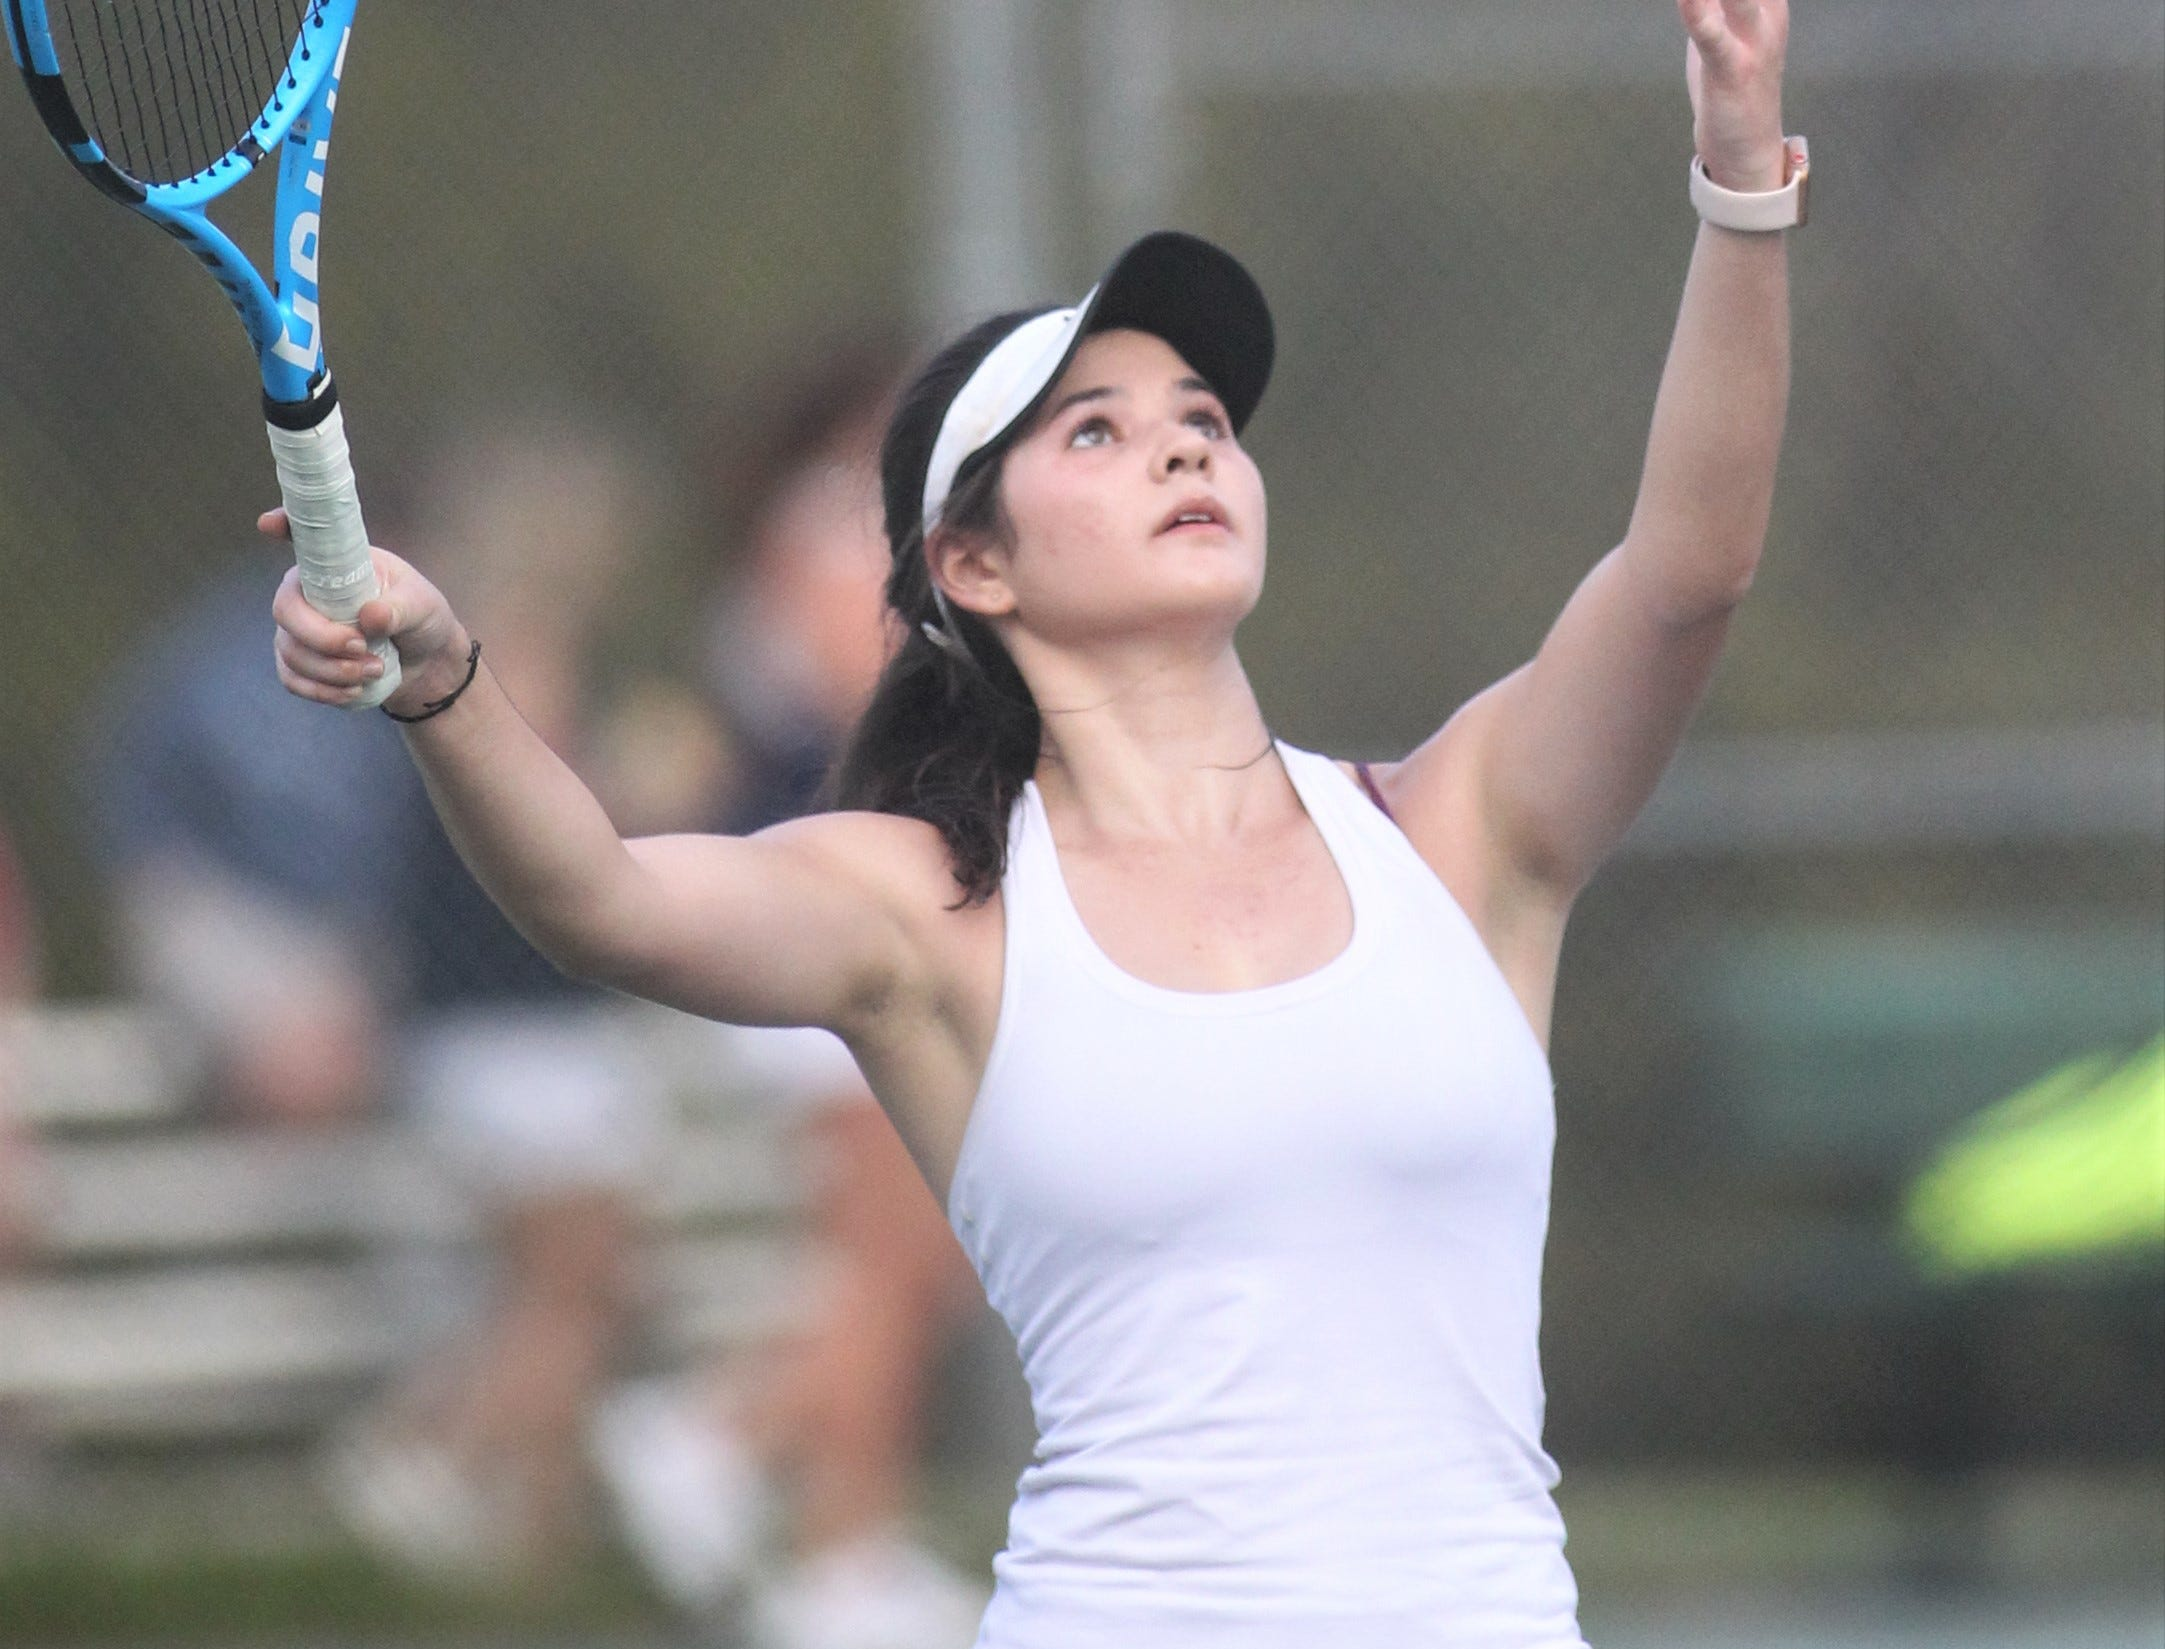 Chiles senior Gracie Wilson serves during the high school boys and girls city tennis tournament at Tom Brown Park on Thursday, March 14, 2019.